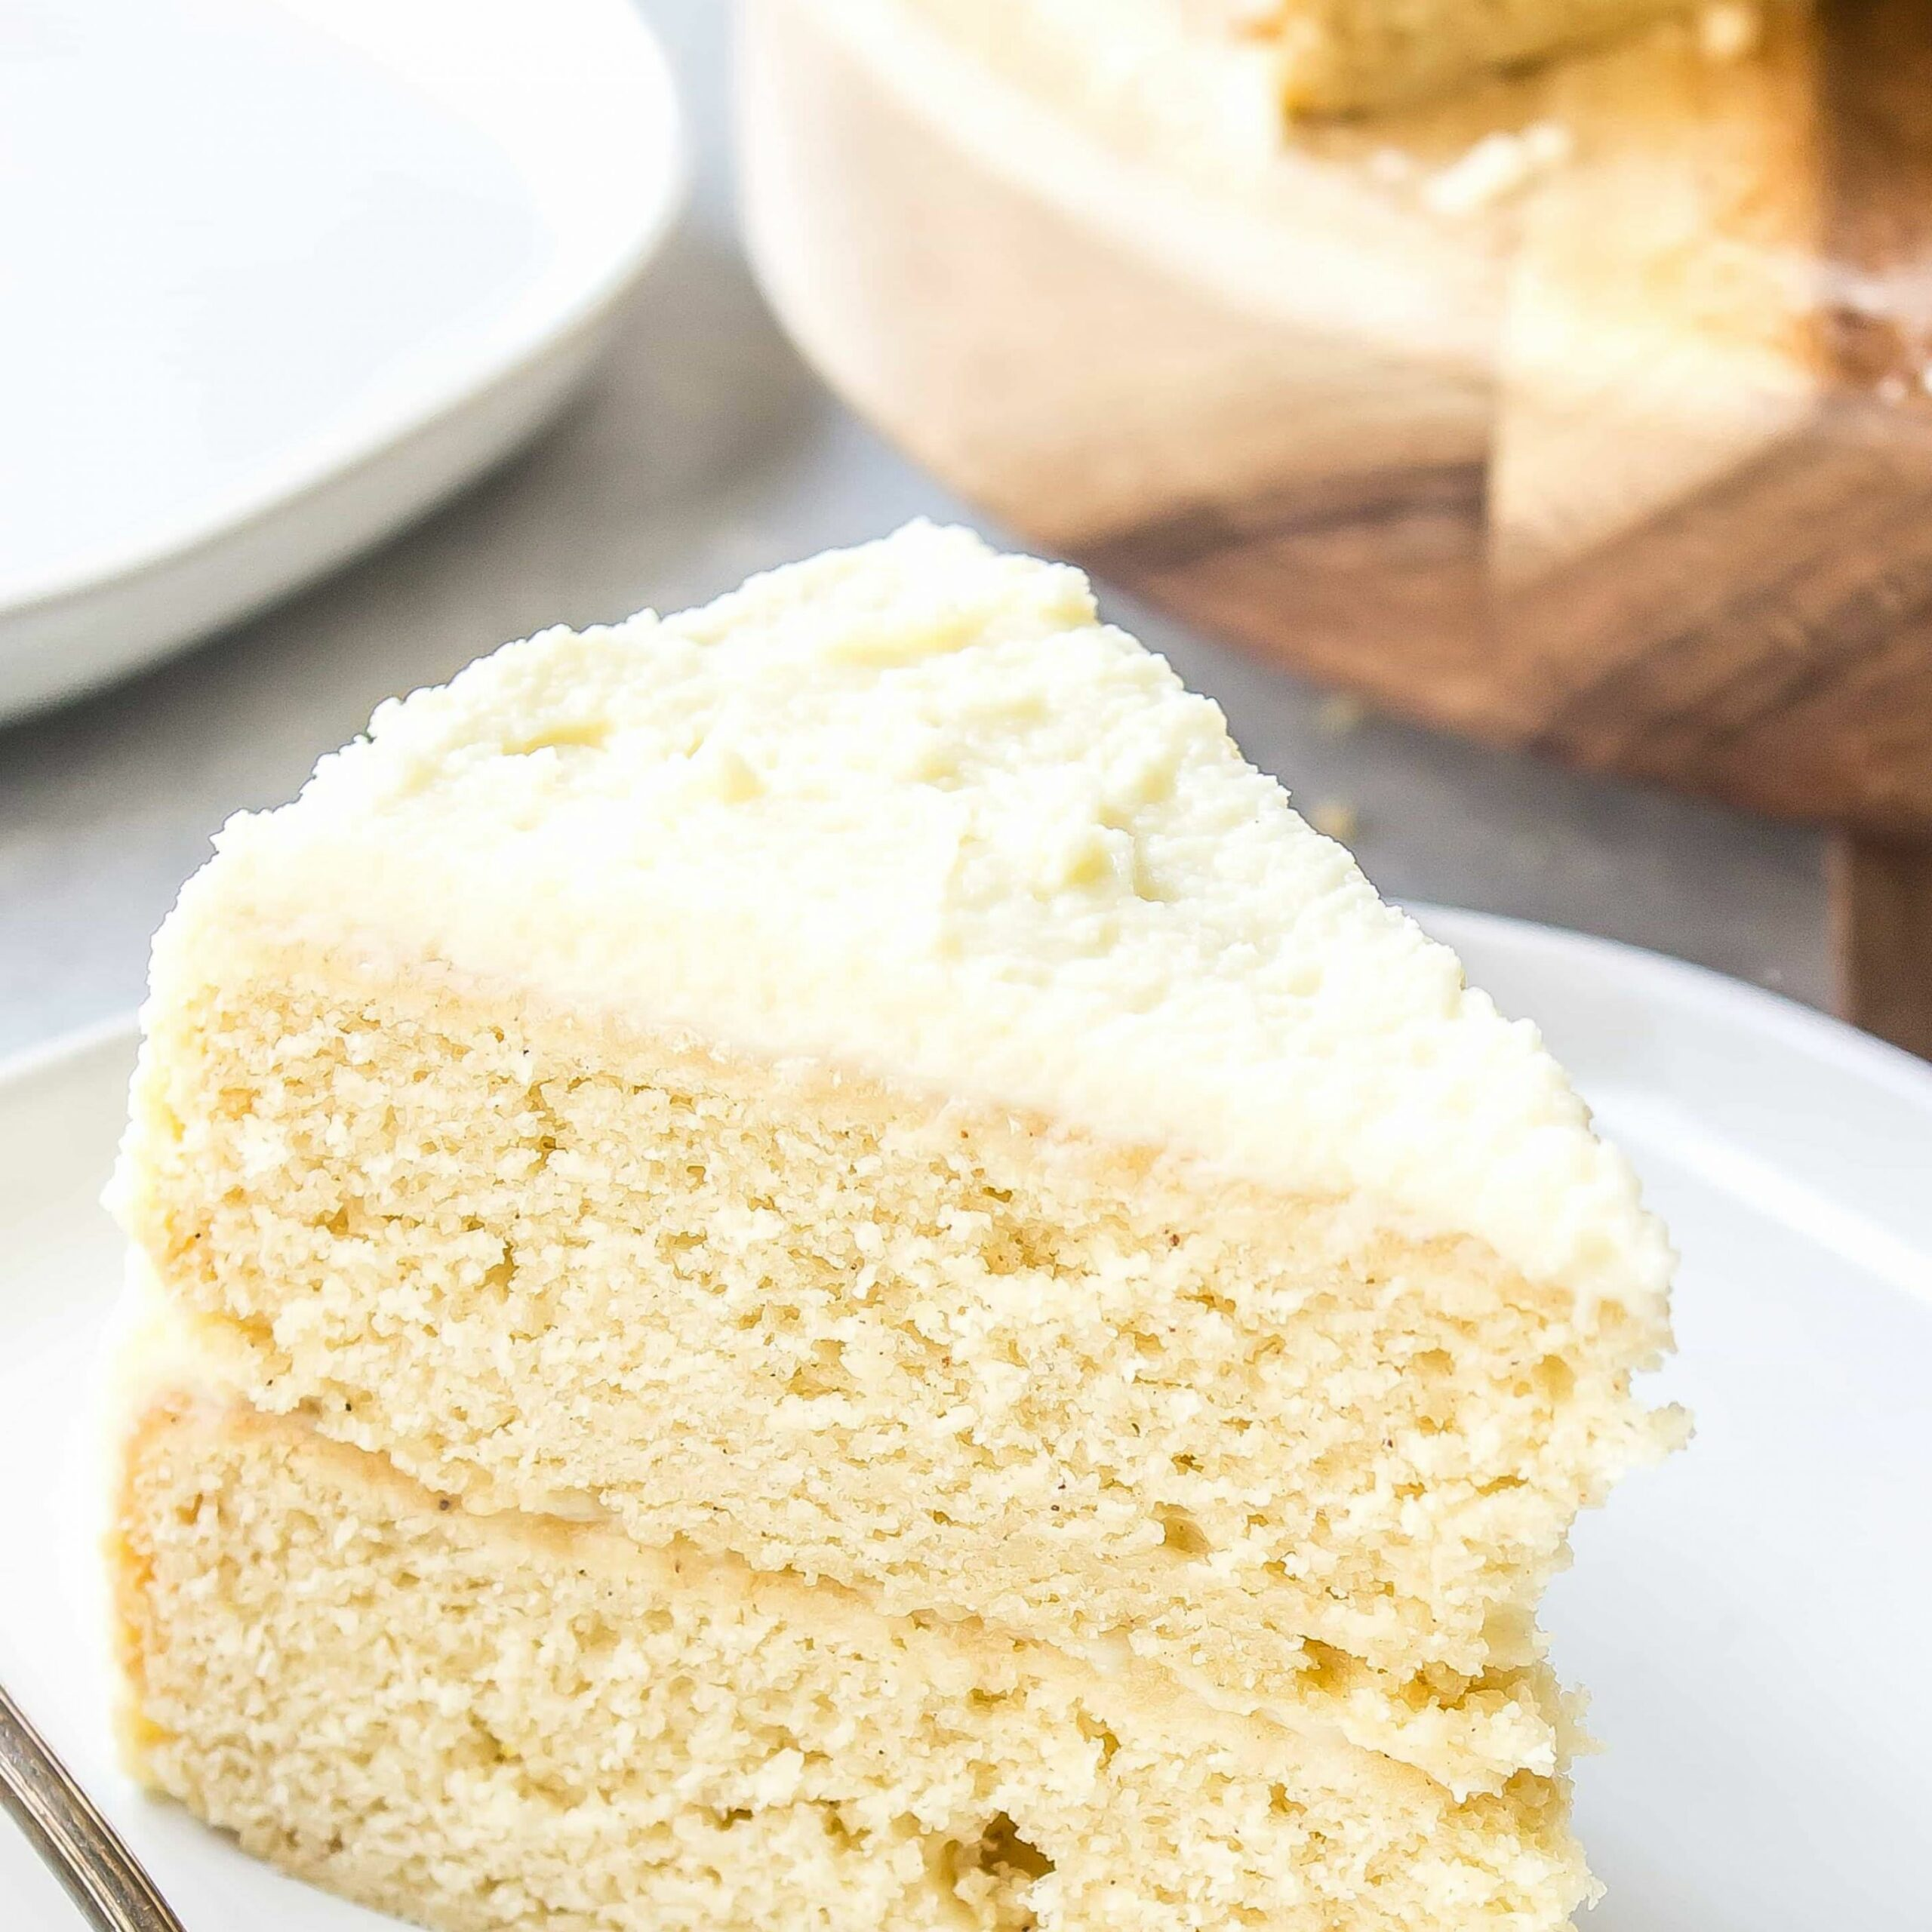 Eggnog Cake with White Chocolate Ganache Whipped Cream Frosting - Cake Recipes Using Xanthan Gum